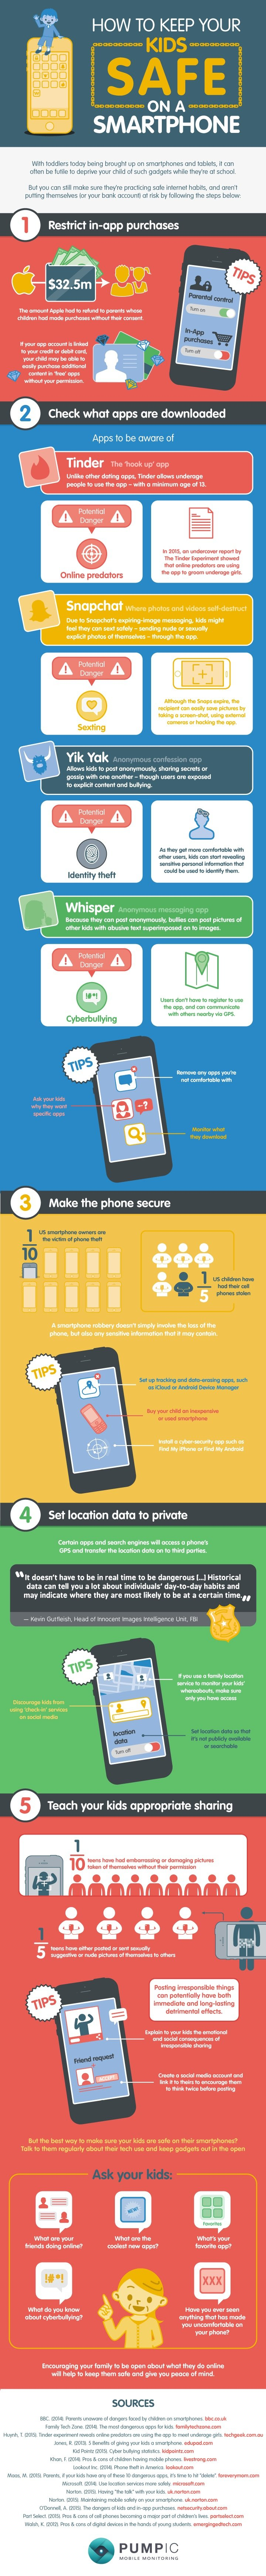 How to keep your kids safe on smart phones #Infographic